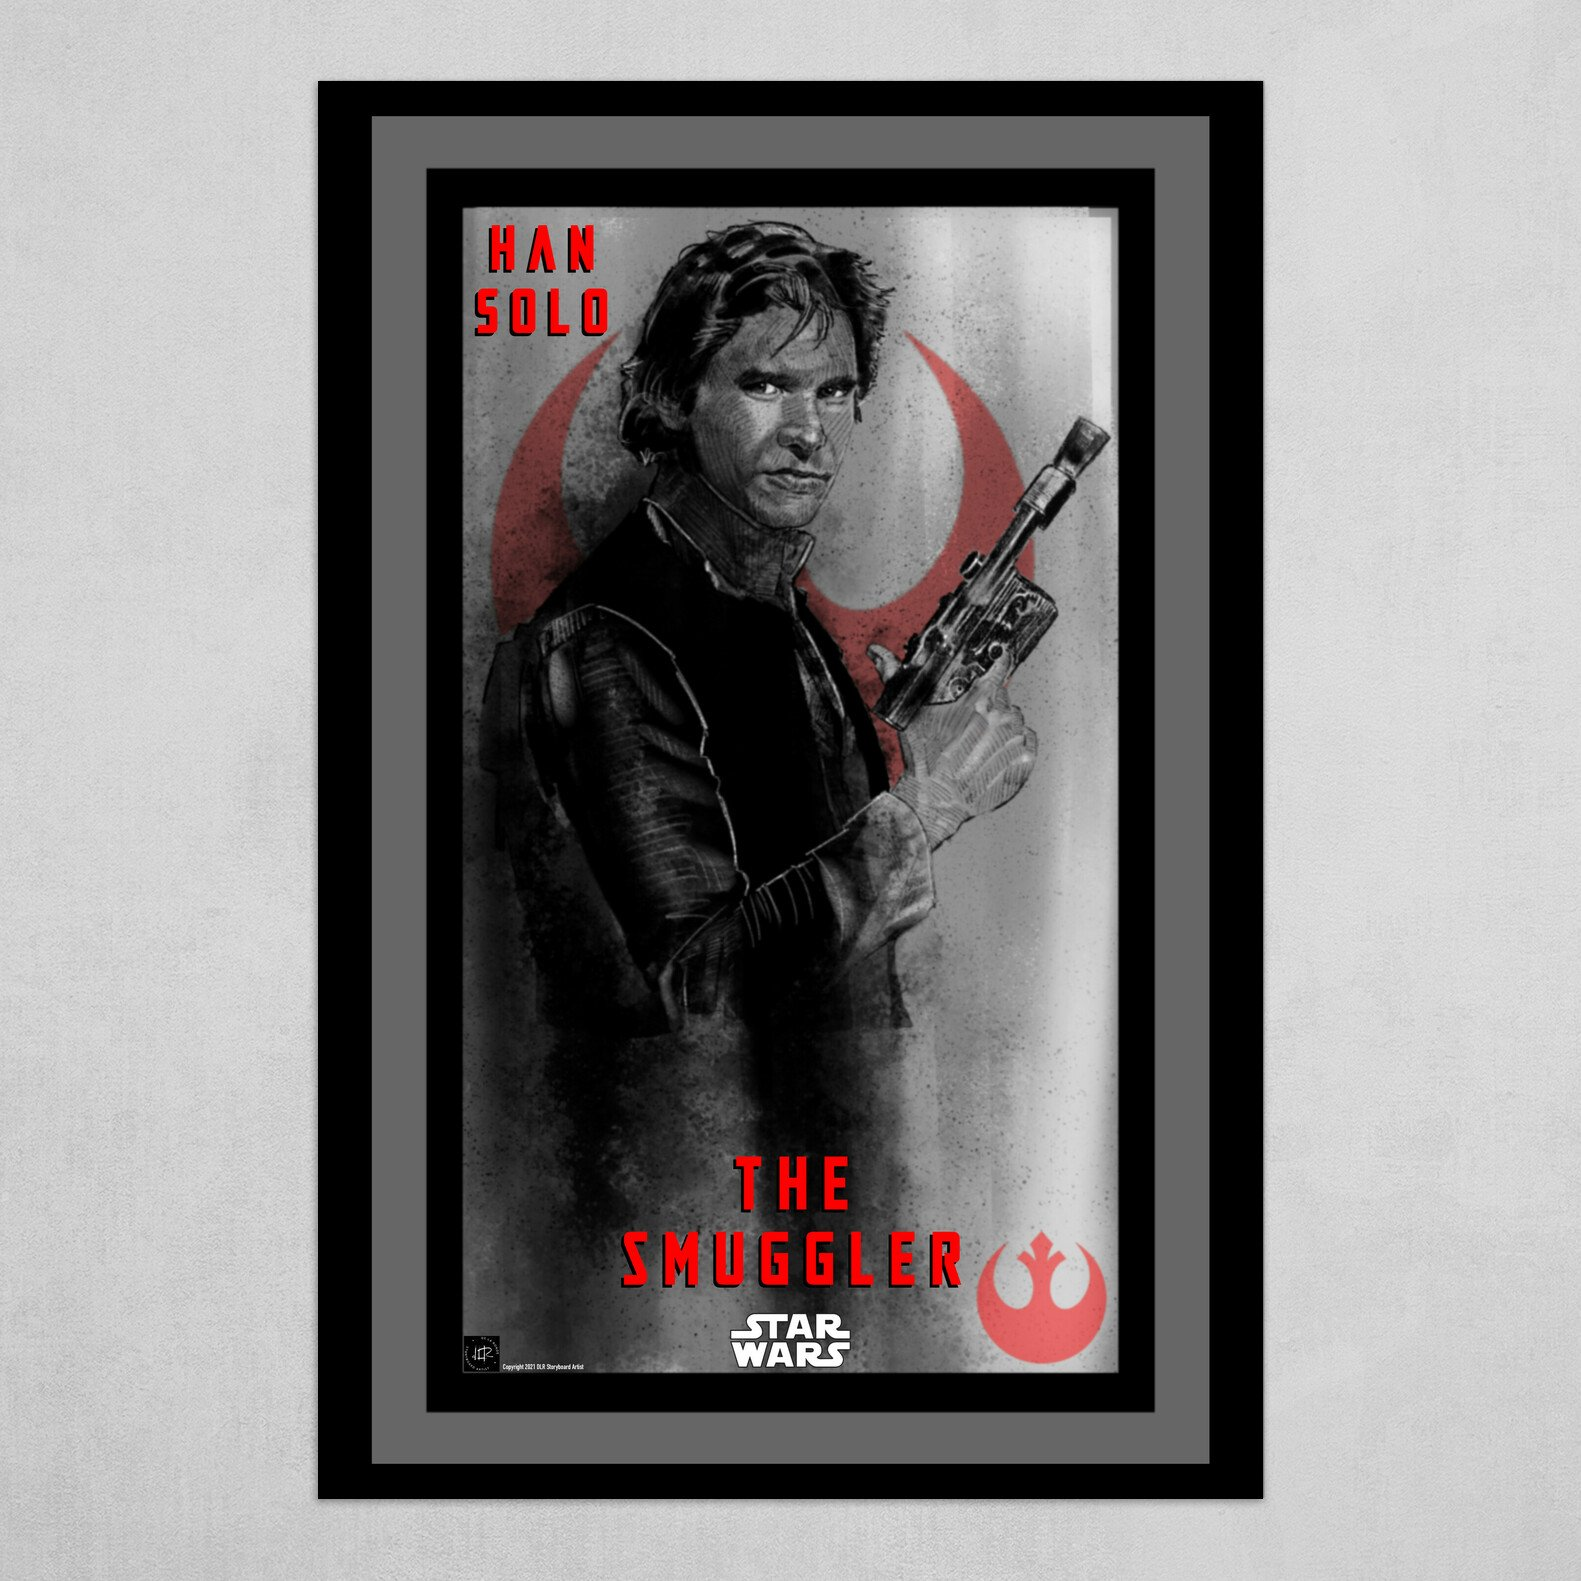 Han Solo-The Smuggler Poster B&W with Red